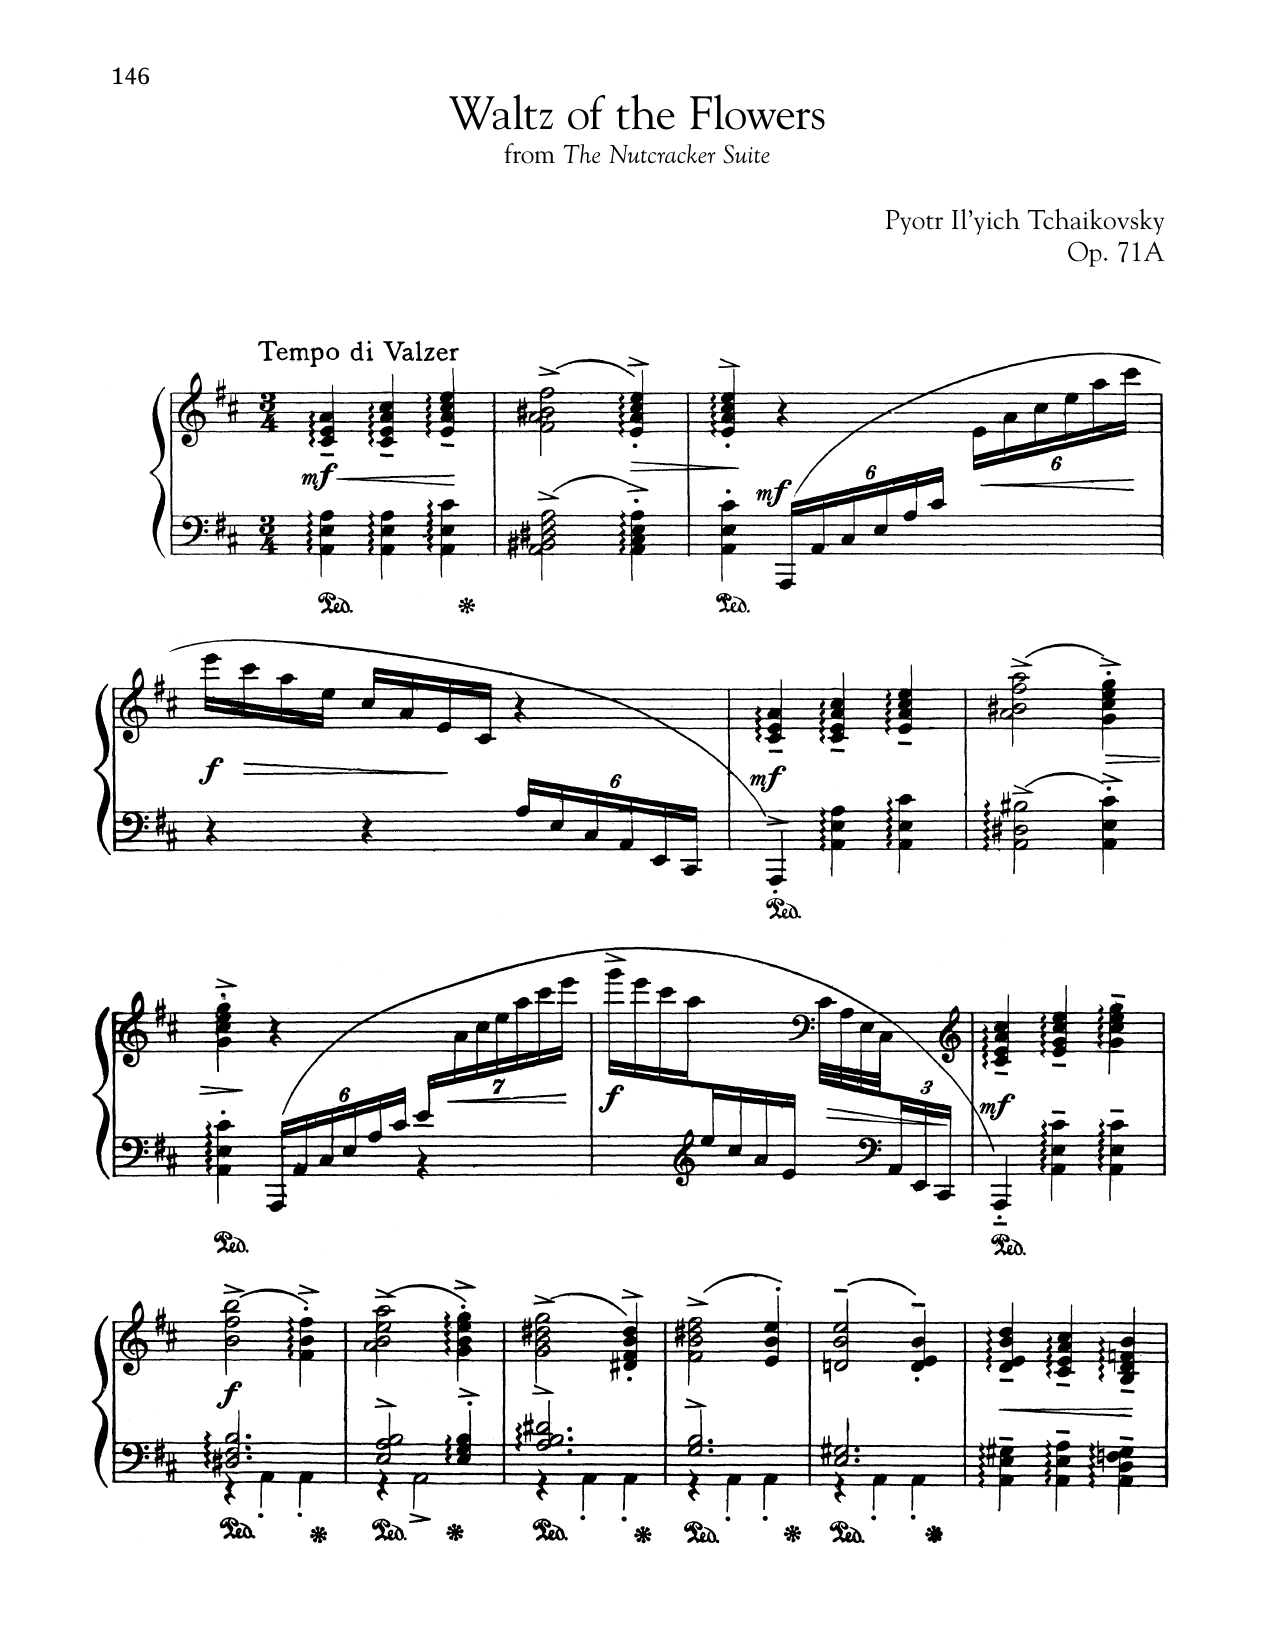 Waltz Of The Flowers, Op. 71a (Piano Solo)